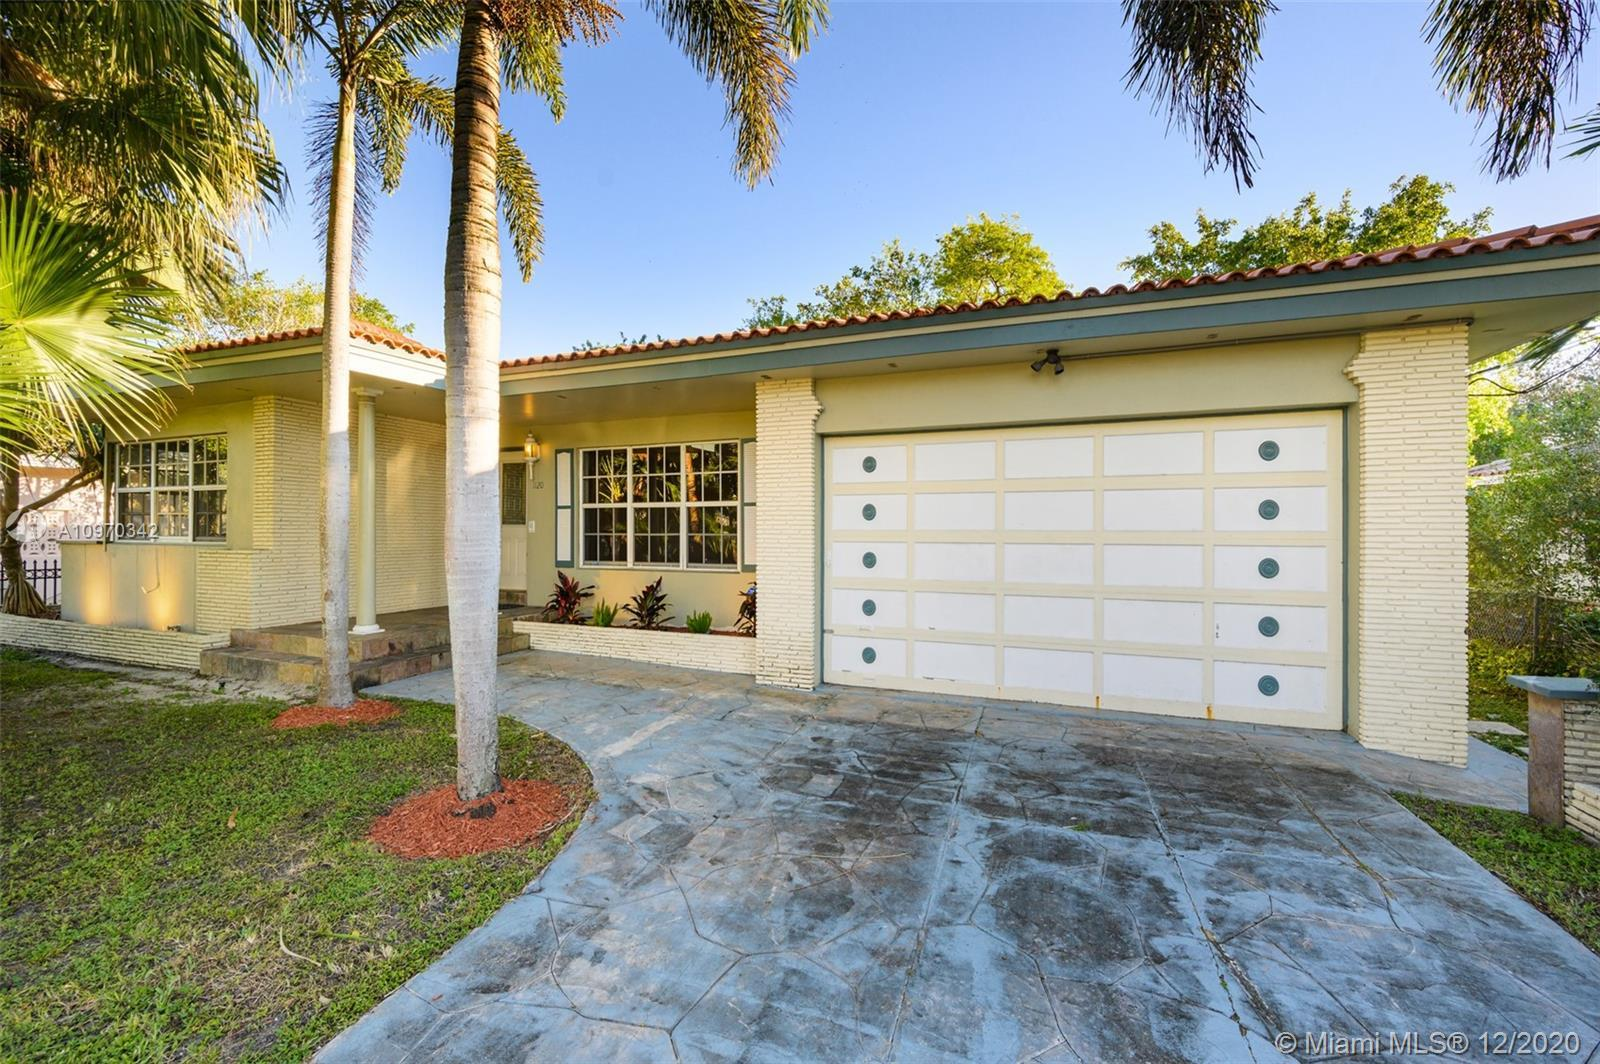 SELLER IS OFFERING A 3.5% CREDIT TOWARDS BUYER'S CLOSING COSTS! A beautifully maintained andspaciou